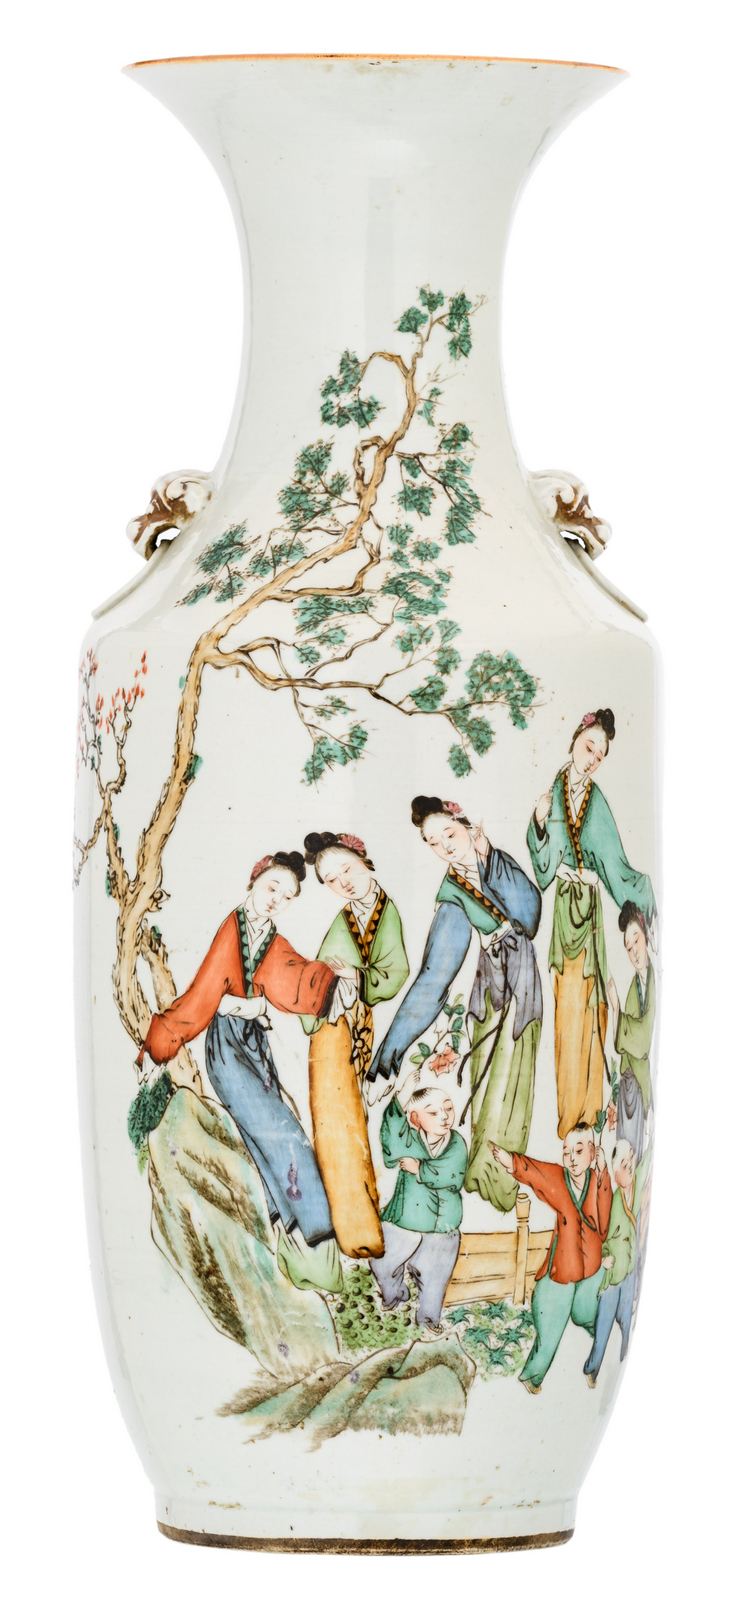 A Chinese polychrome decorated vase with ladies and playing children in a garden and calligraphic texts, marked, H 58 cm